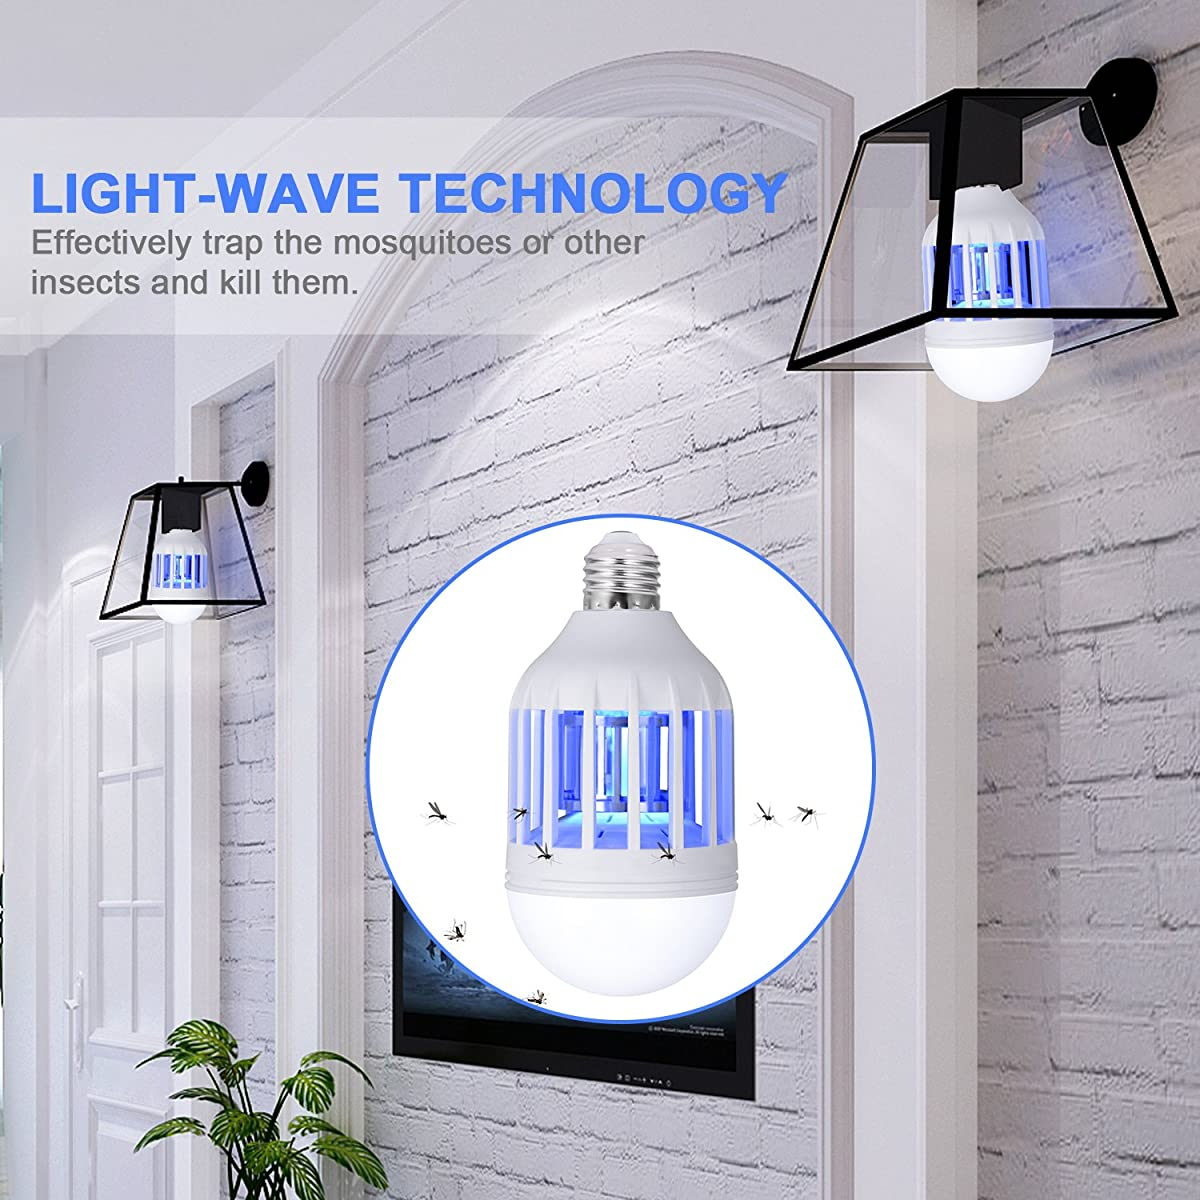 Boomile Bug Zapper Light Bulb, Electronic Insect Killer, Mosquito Zapper Lamp, Fly Killer, Built in Insect Trap, 110V E26/E27 Light Bulb Socket Base for Home Indoor Outdoor Garden Patio Backyard